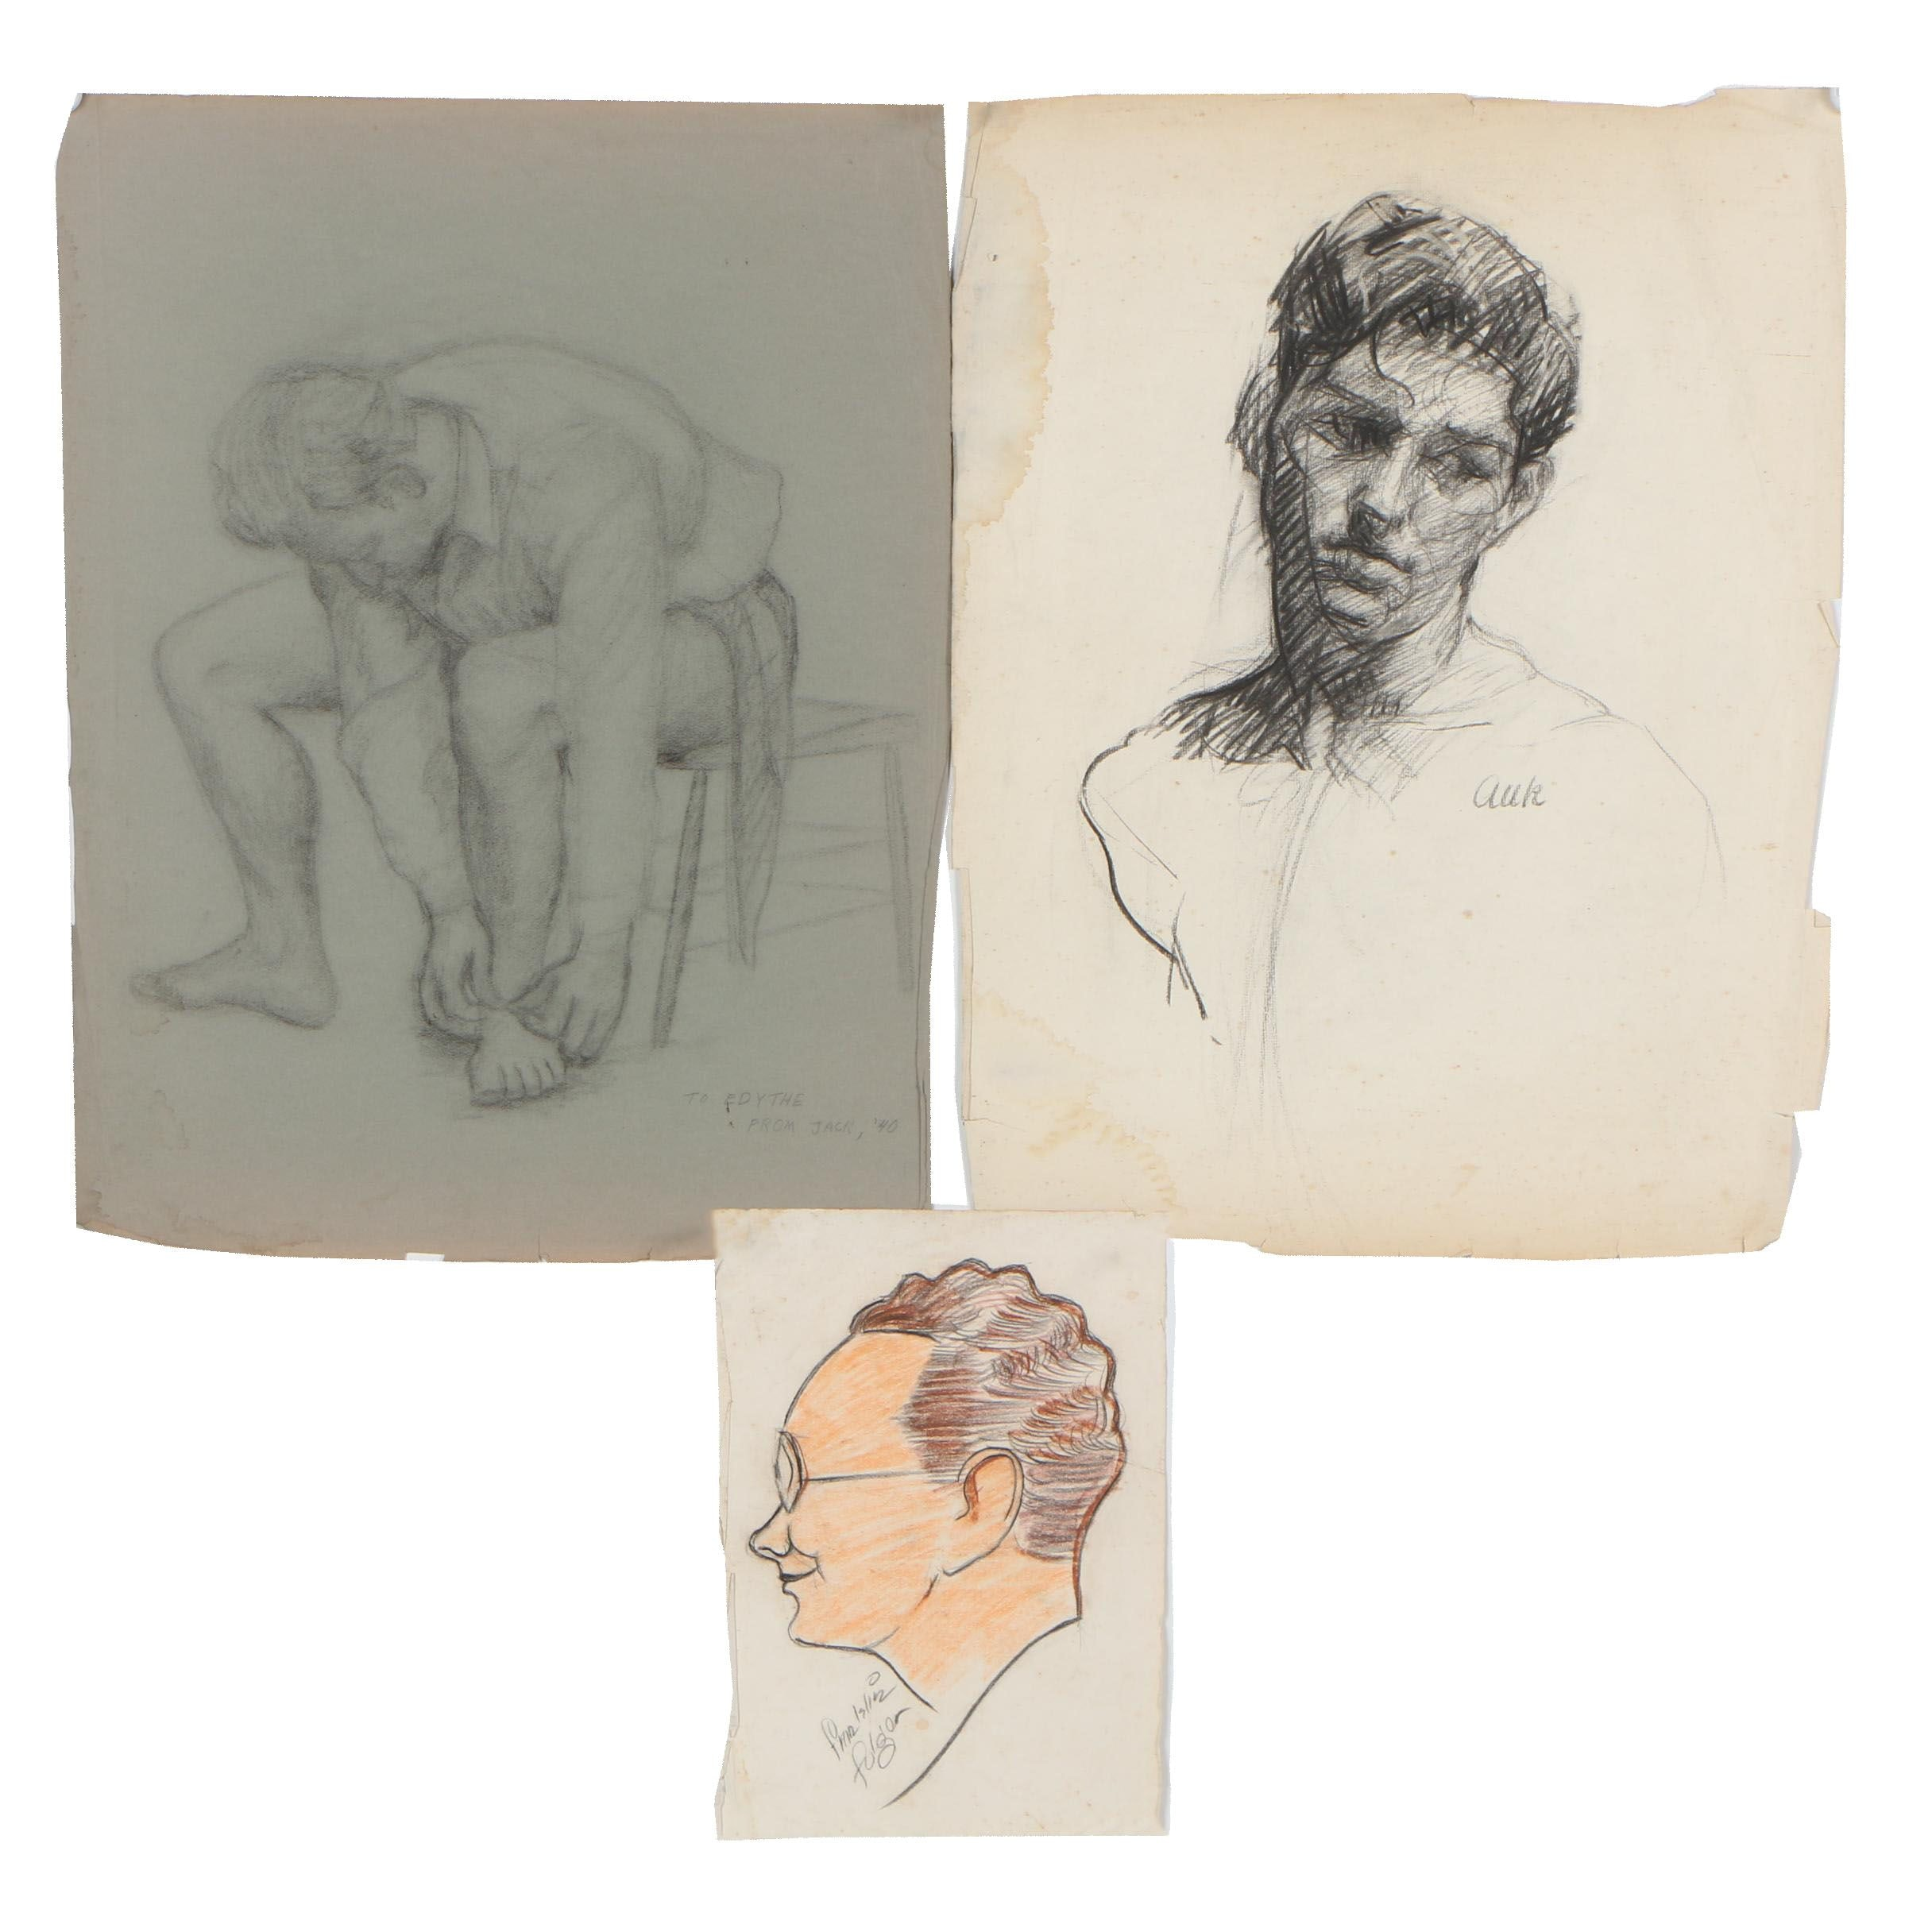 1940-1950s Charcoal Drawings Featuring Franklin Folger's Illustration